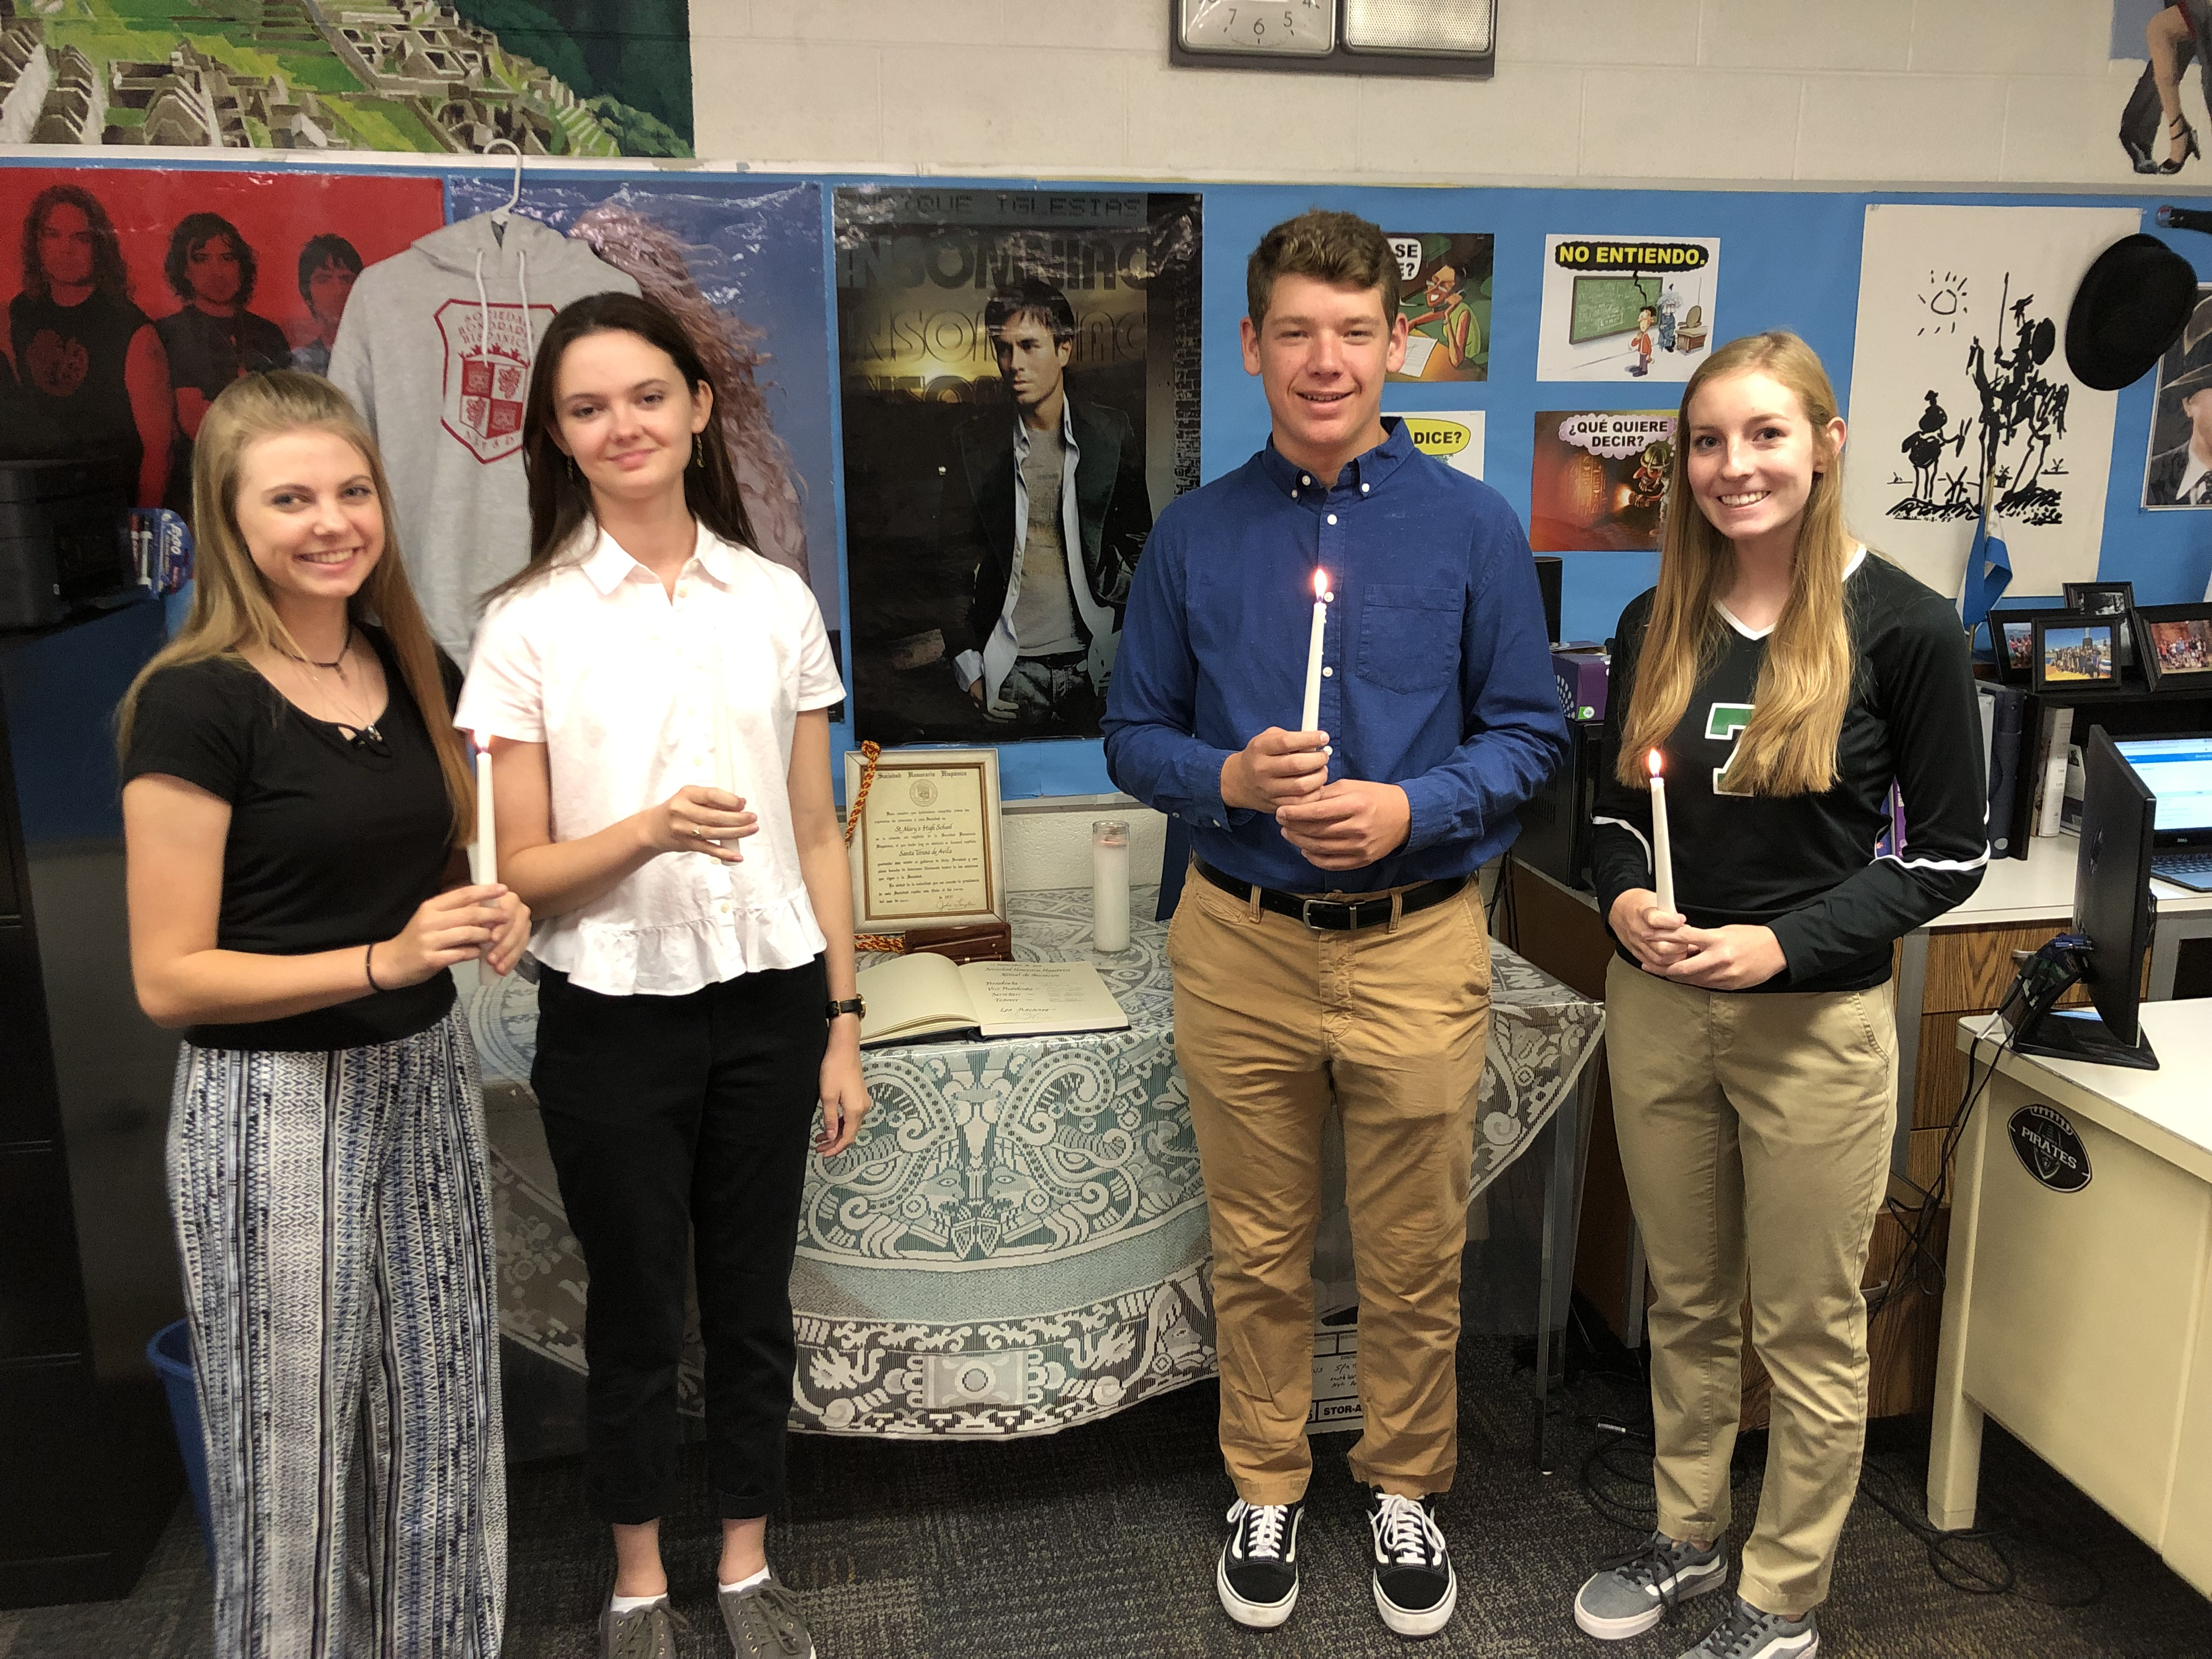 4 students holding a candle at an event